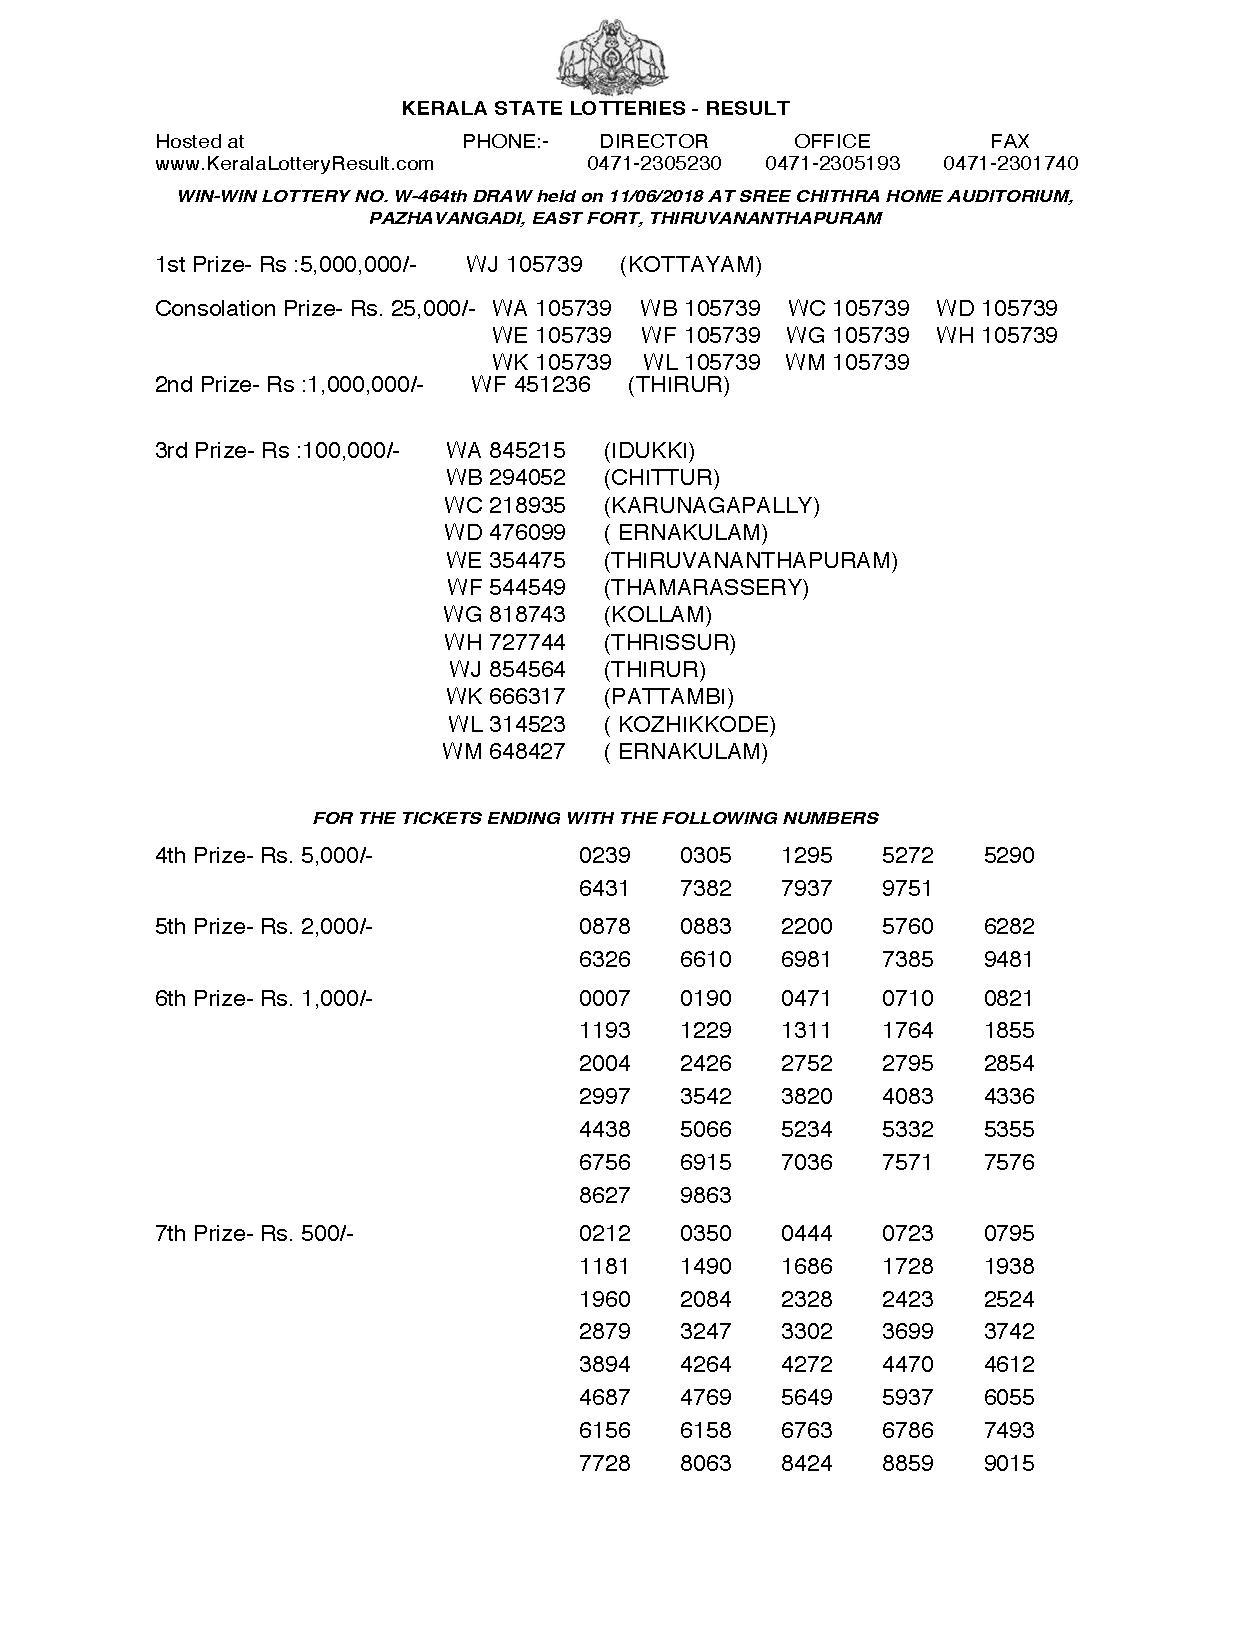 Winwin W464 Kerala Lottery Results Screenshot: Page 1